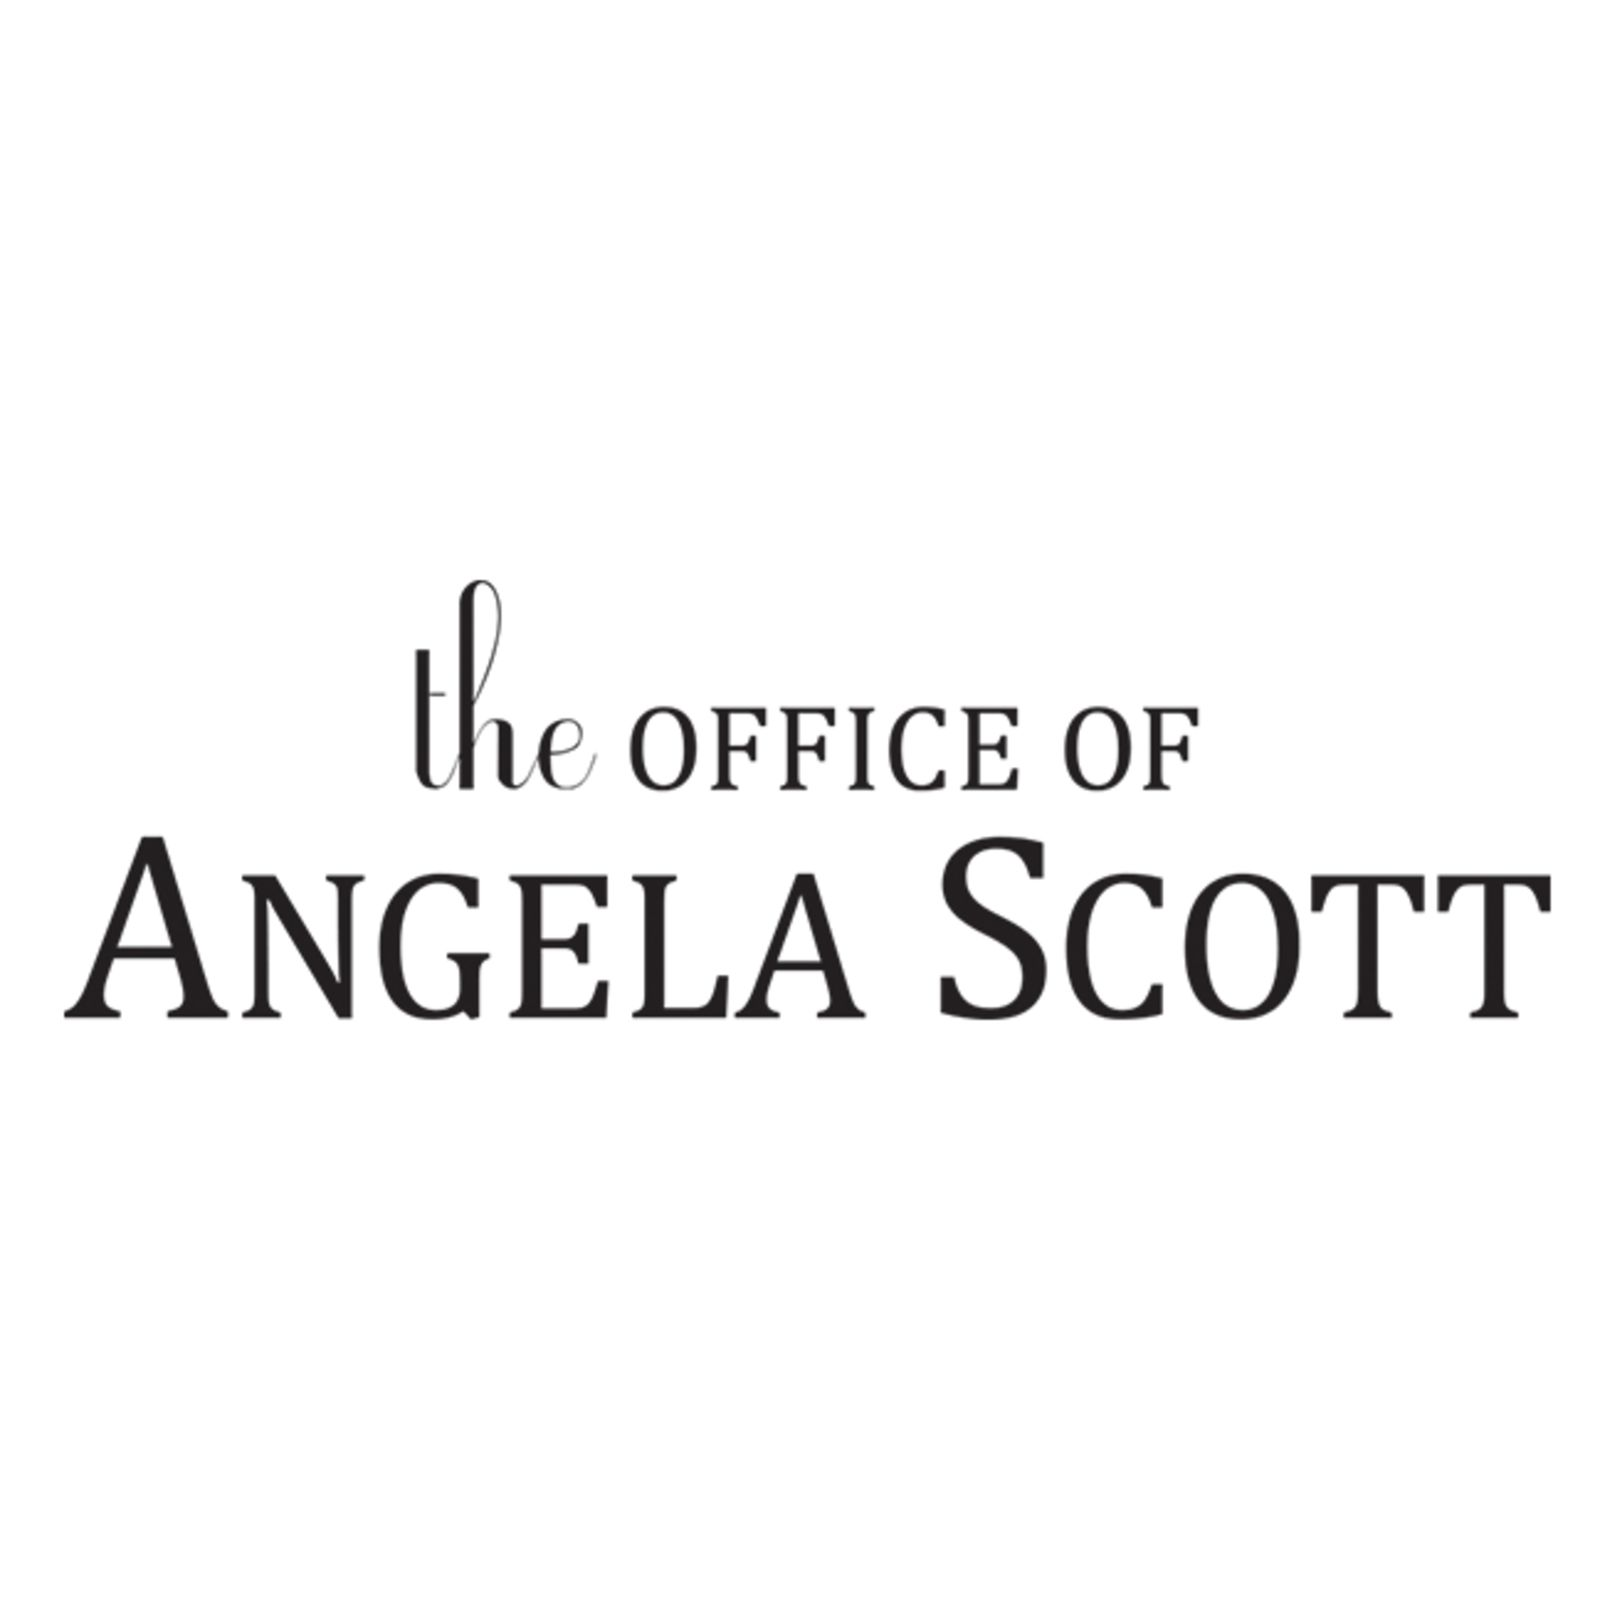 the OFFICE OF ANGELA SCOTT